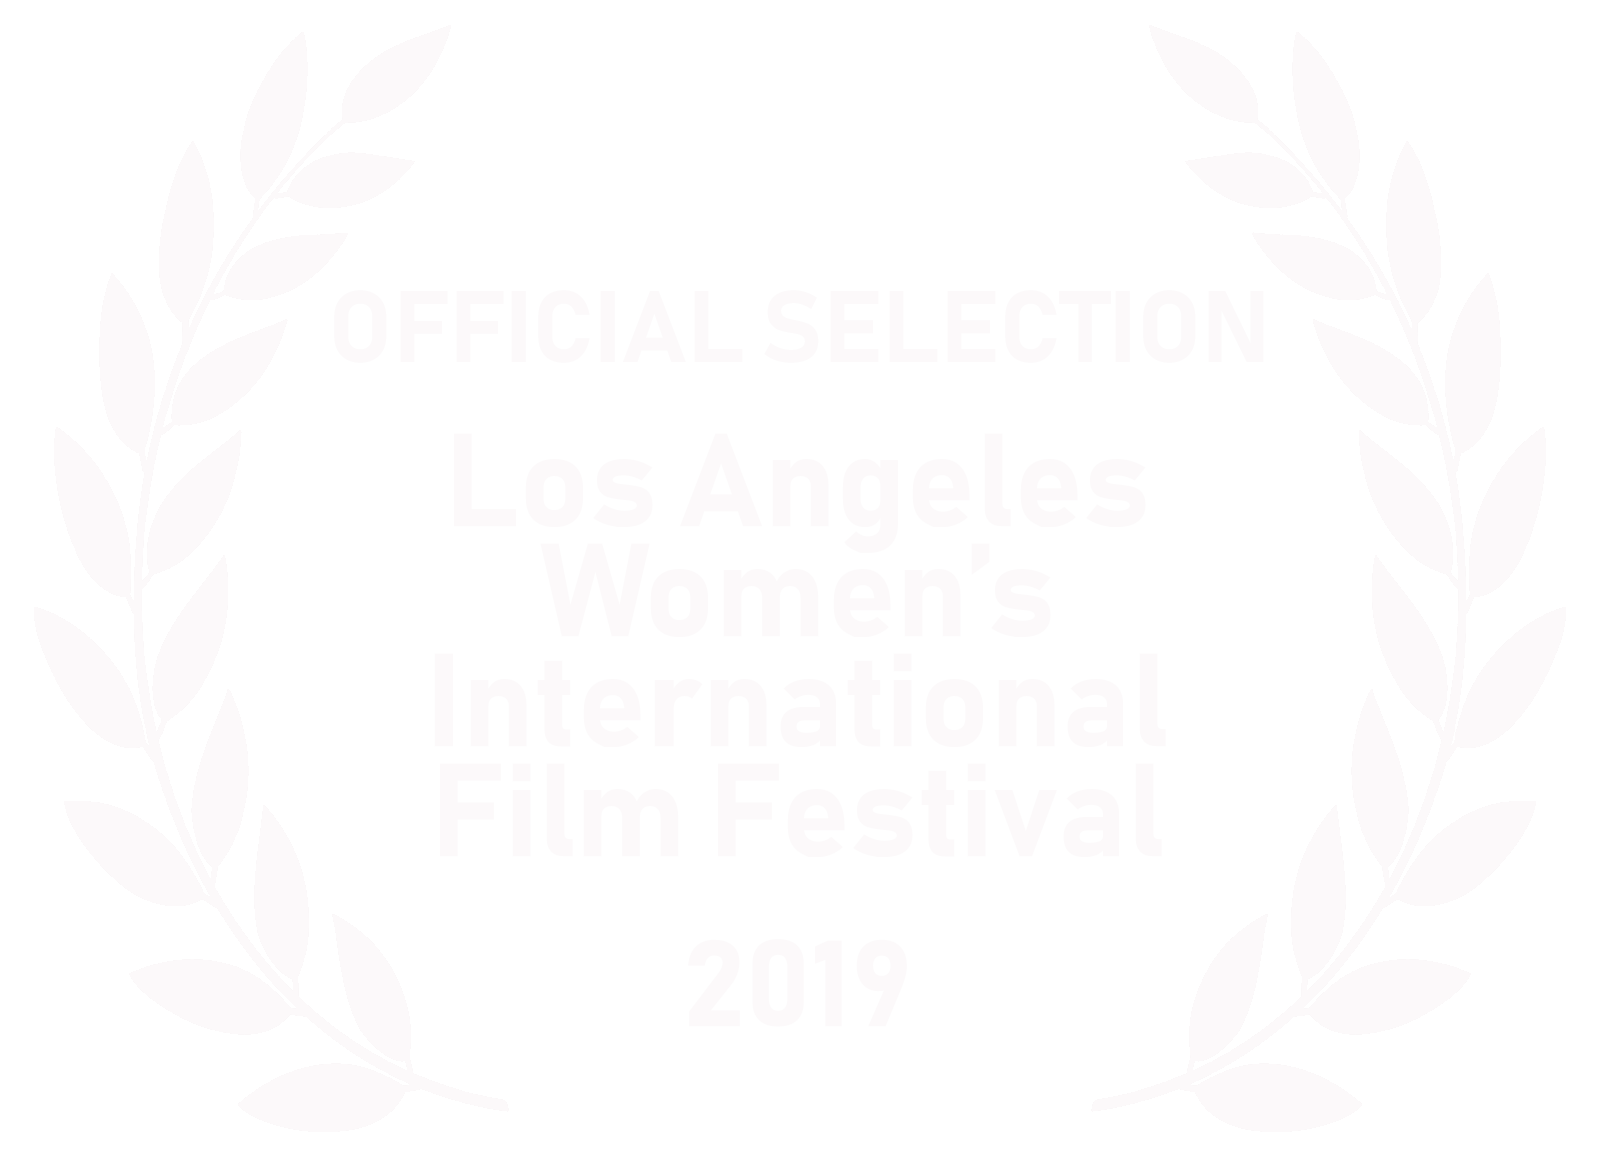 Los Angeles Women's International Film Festival (March 2019) -